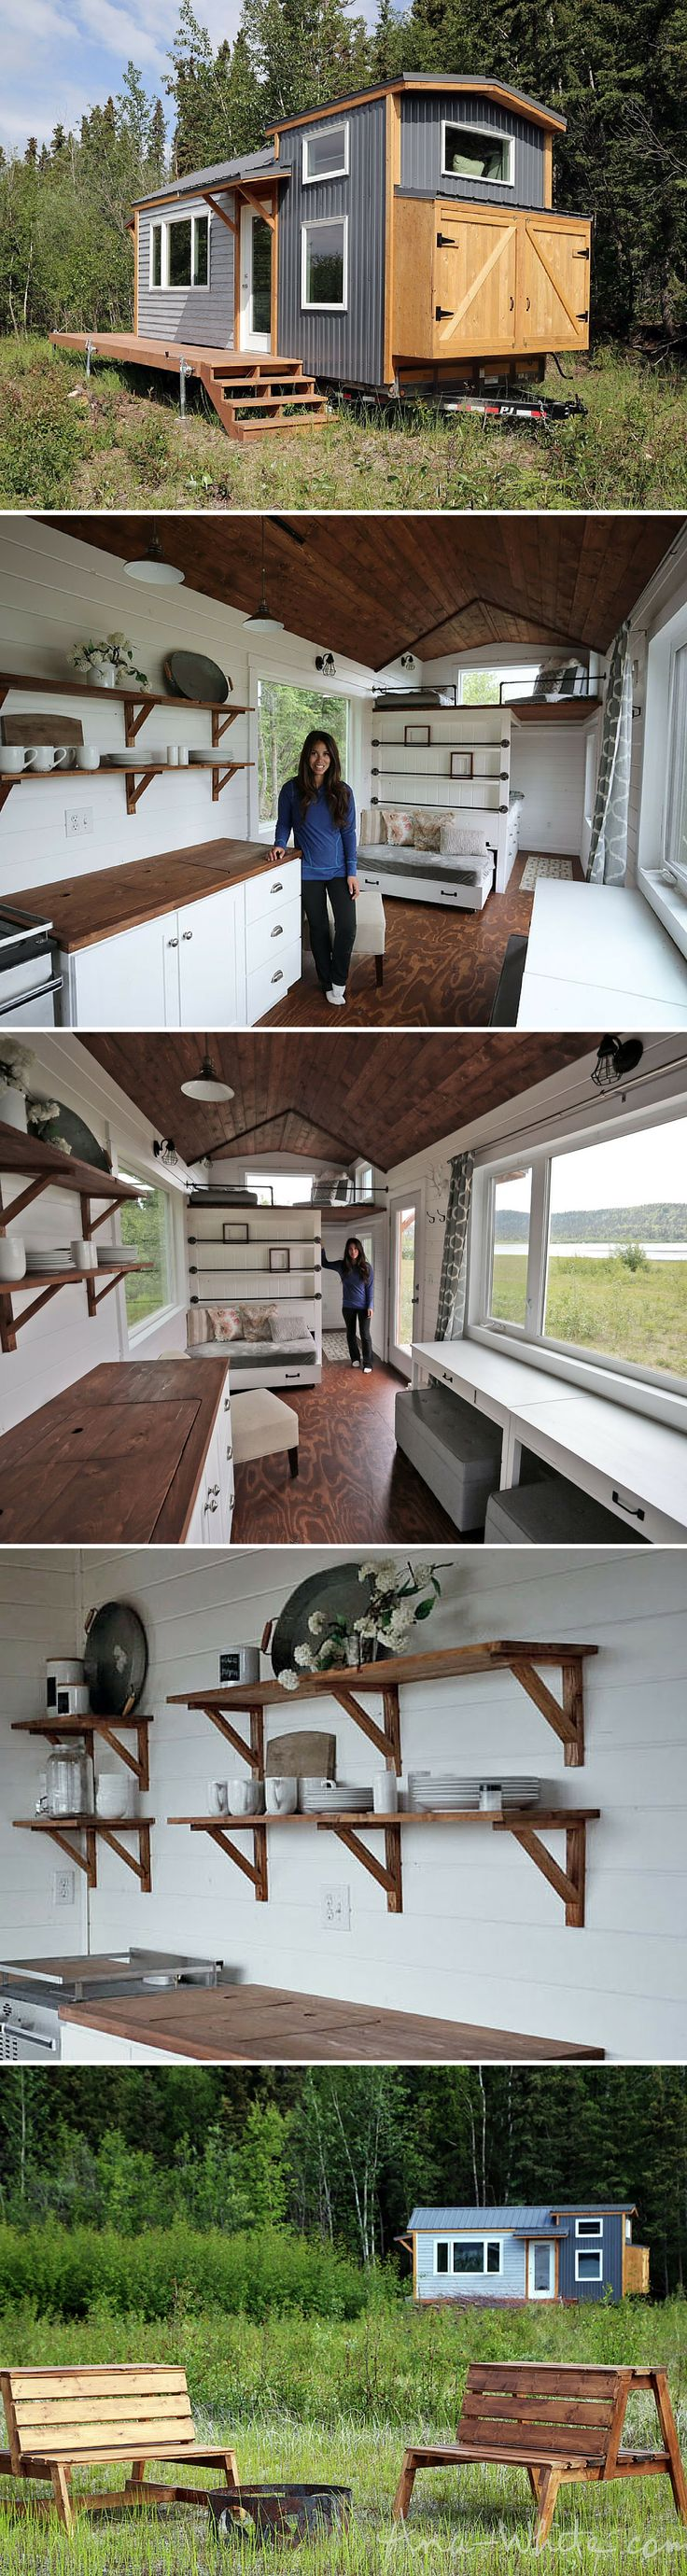 Wicked 105 Impressive Tiny Houses That Maximize Function and Style https://decoratio.co/2017/03/105-impressive-tiny-houses-maximize-function-style/